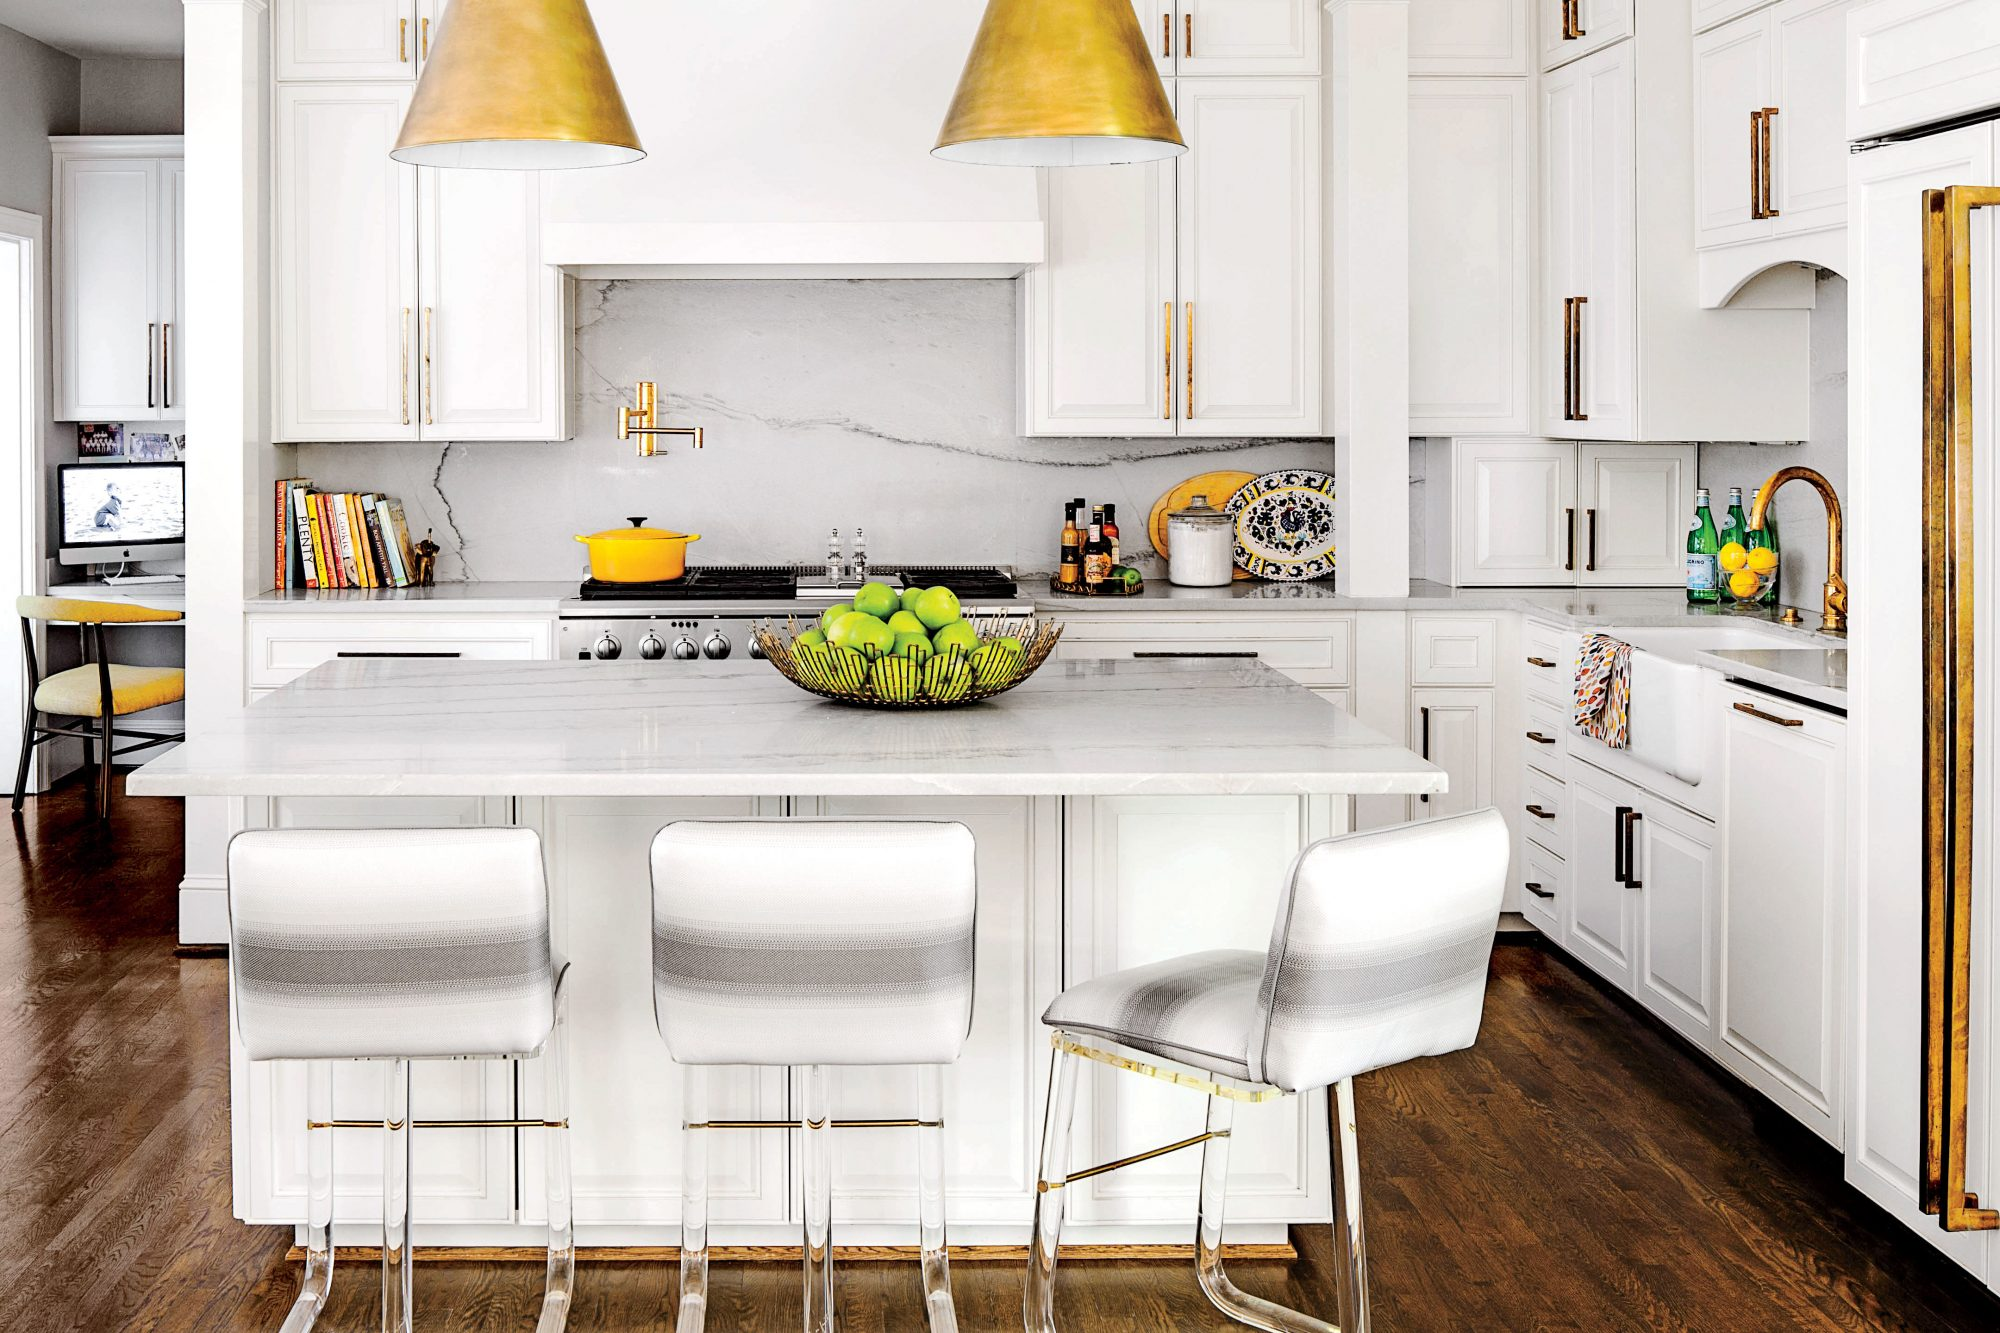 The 5 Things You Should Know Before Choosing Stone Countertops